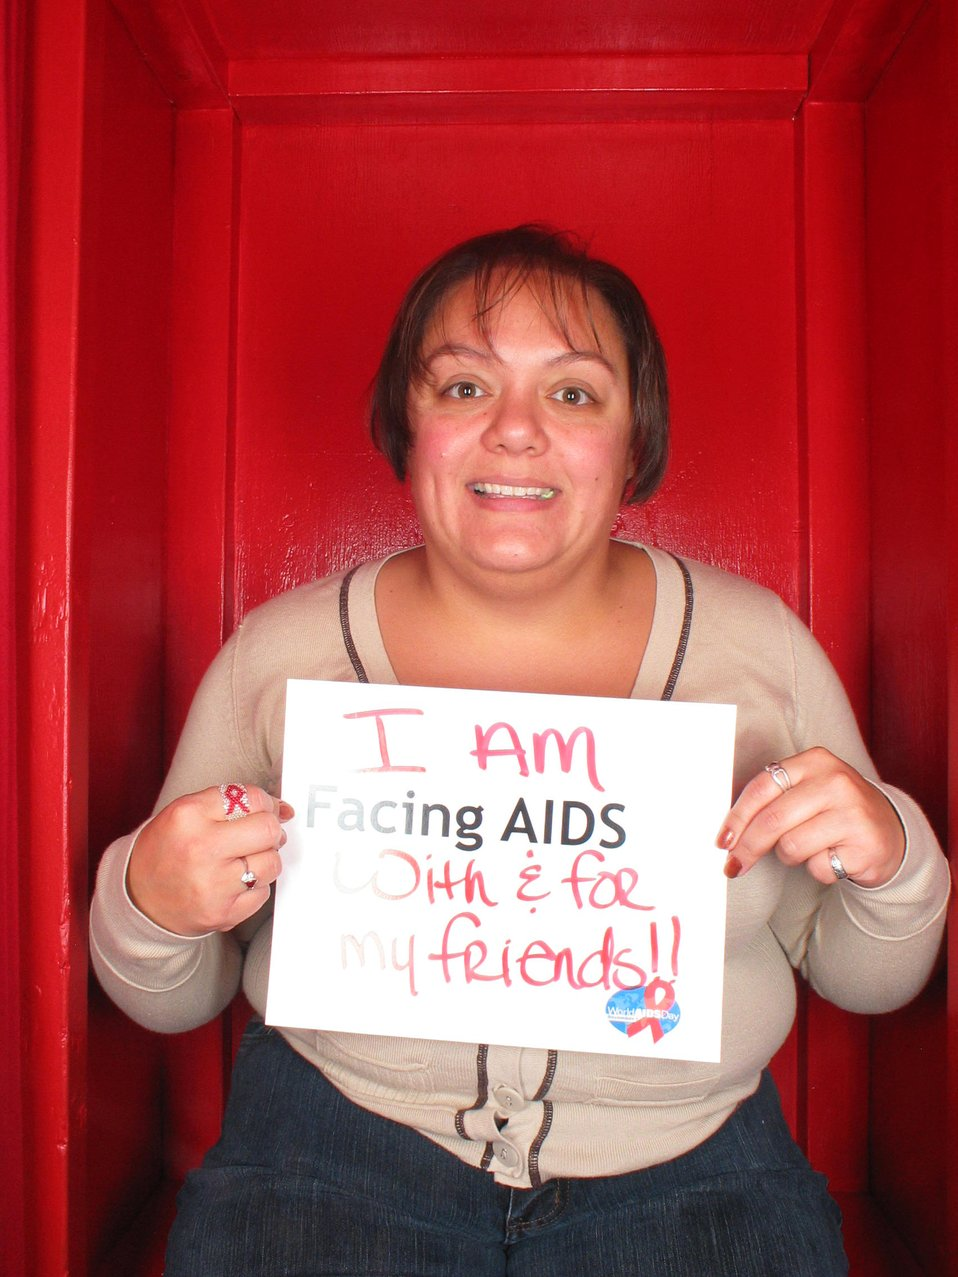 I am Facing AIDS with and for my friends!!